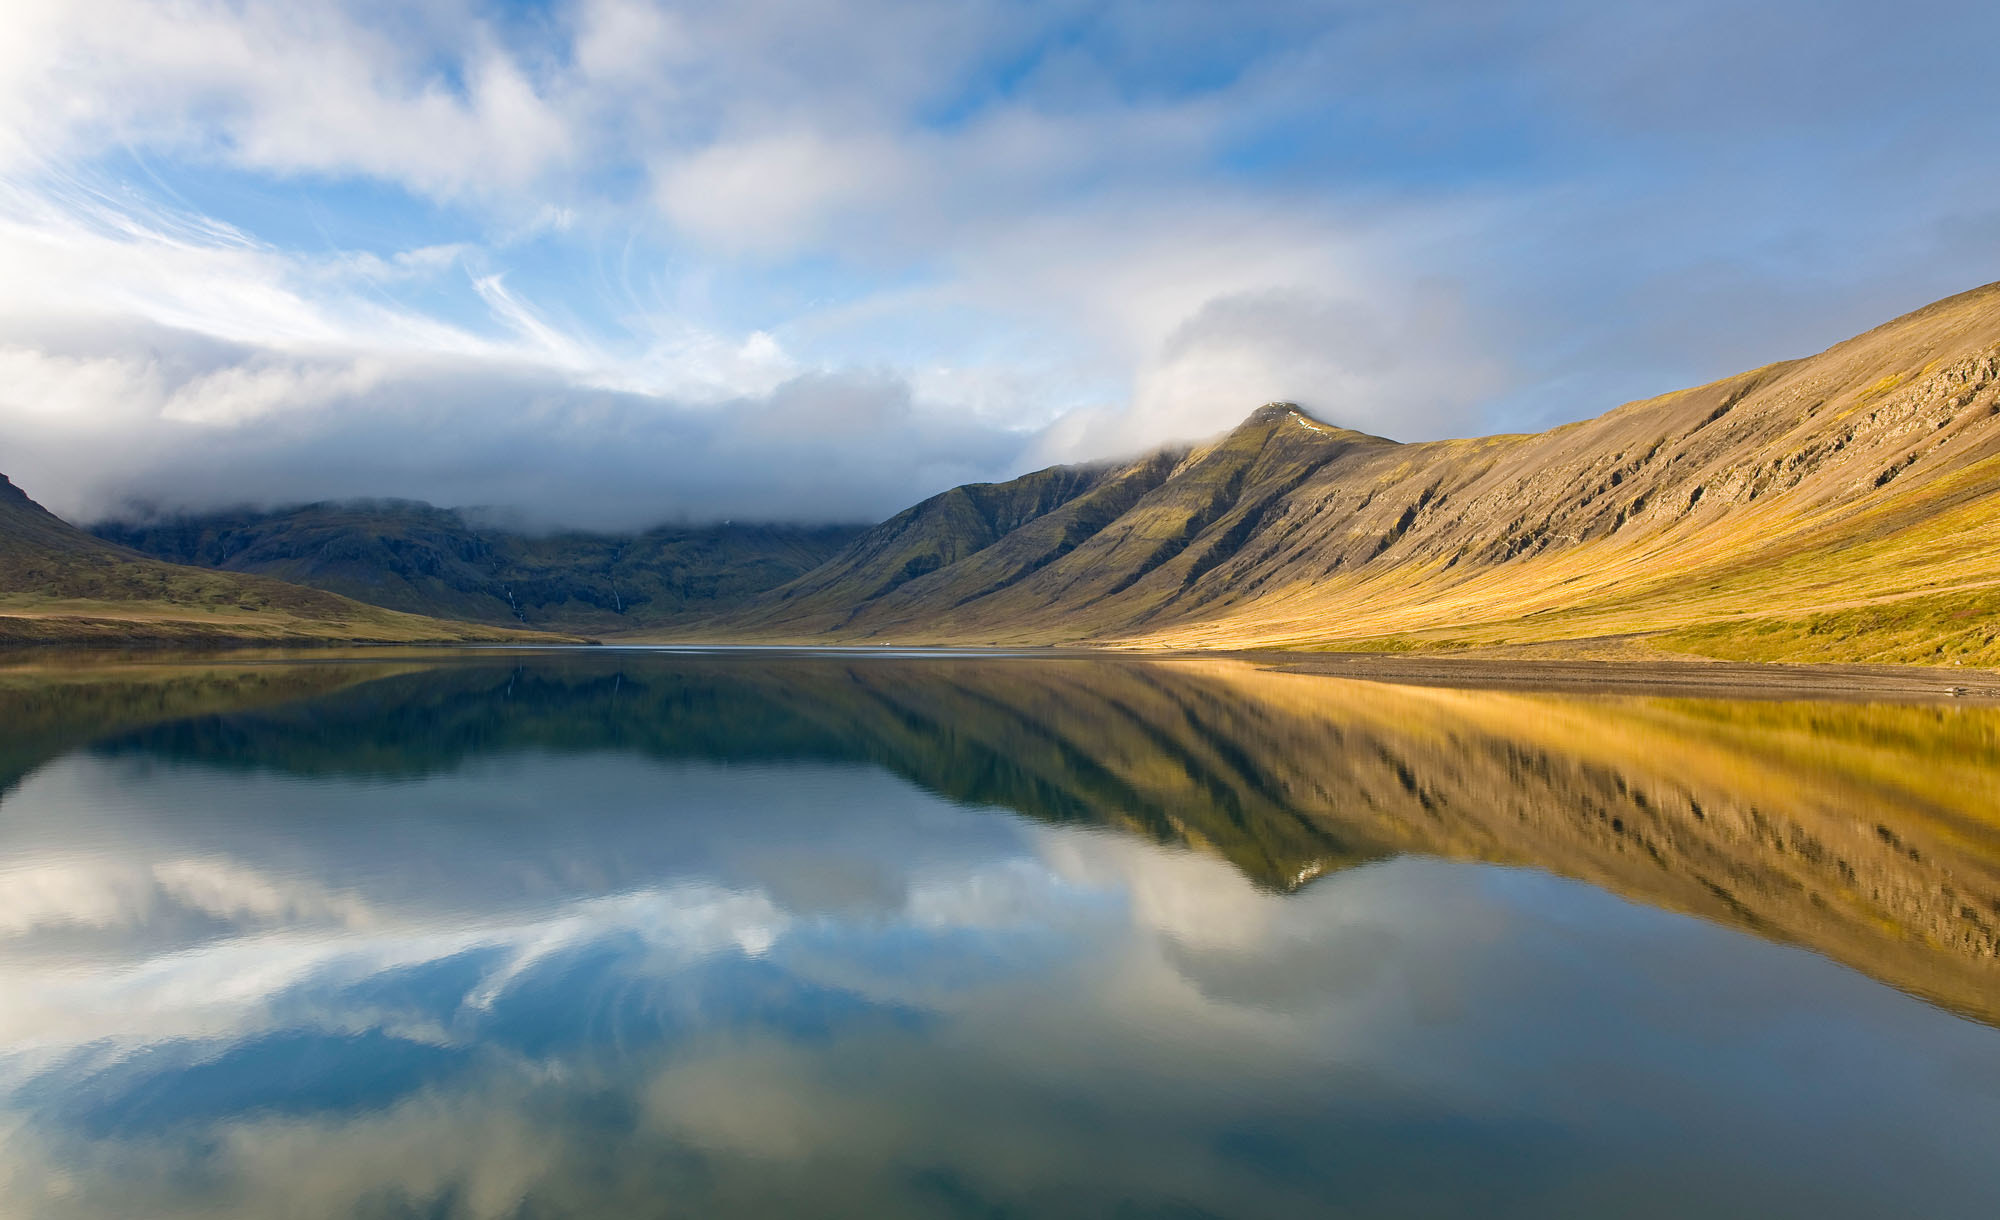 Photograph Purity by Daniel Bosma on 500px